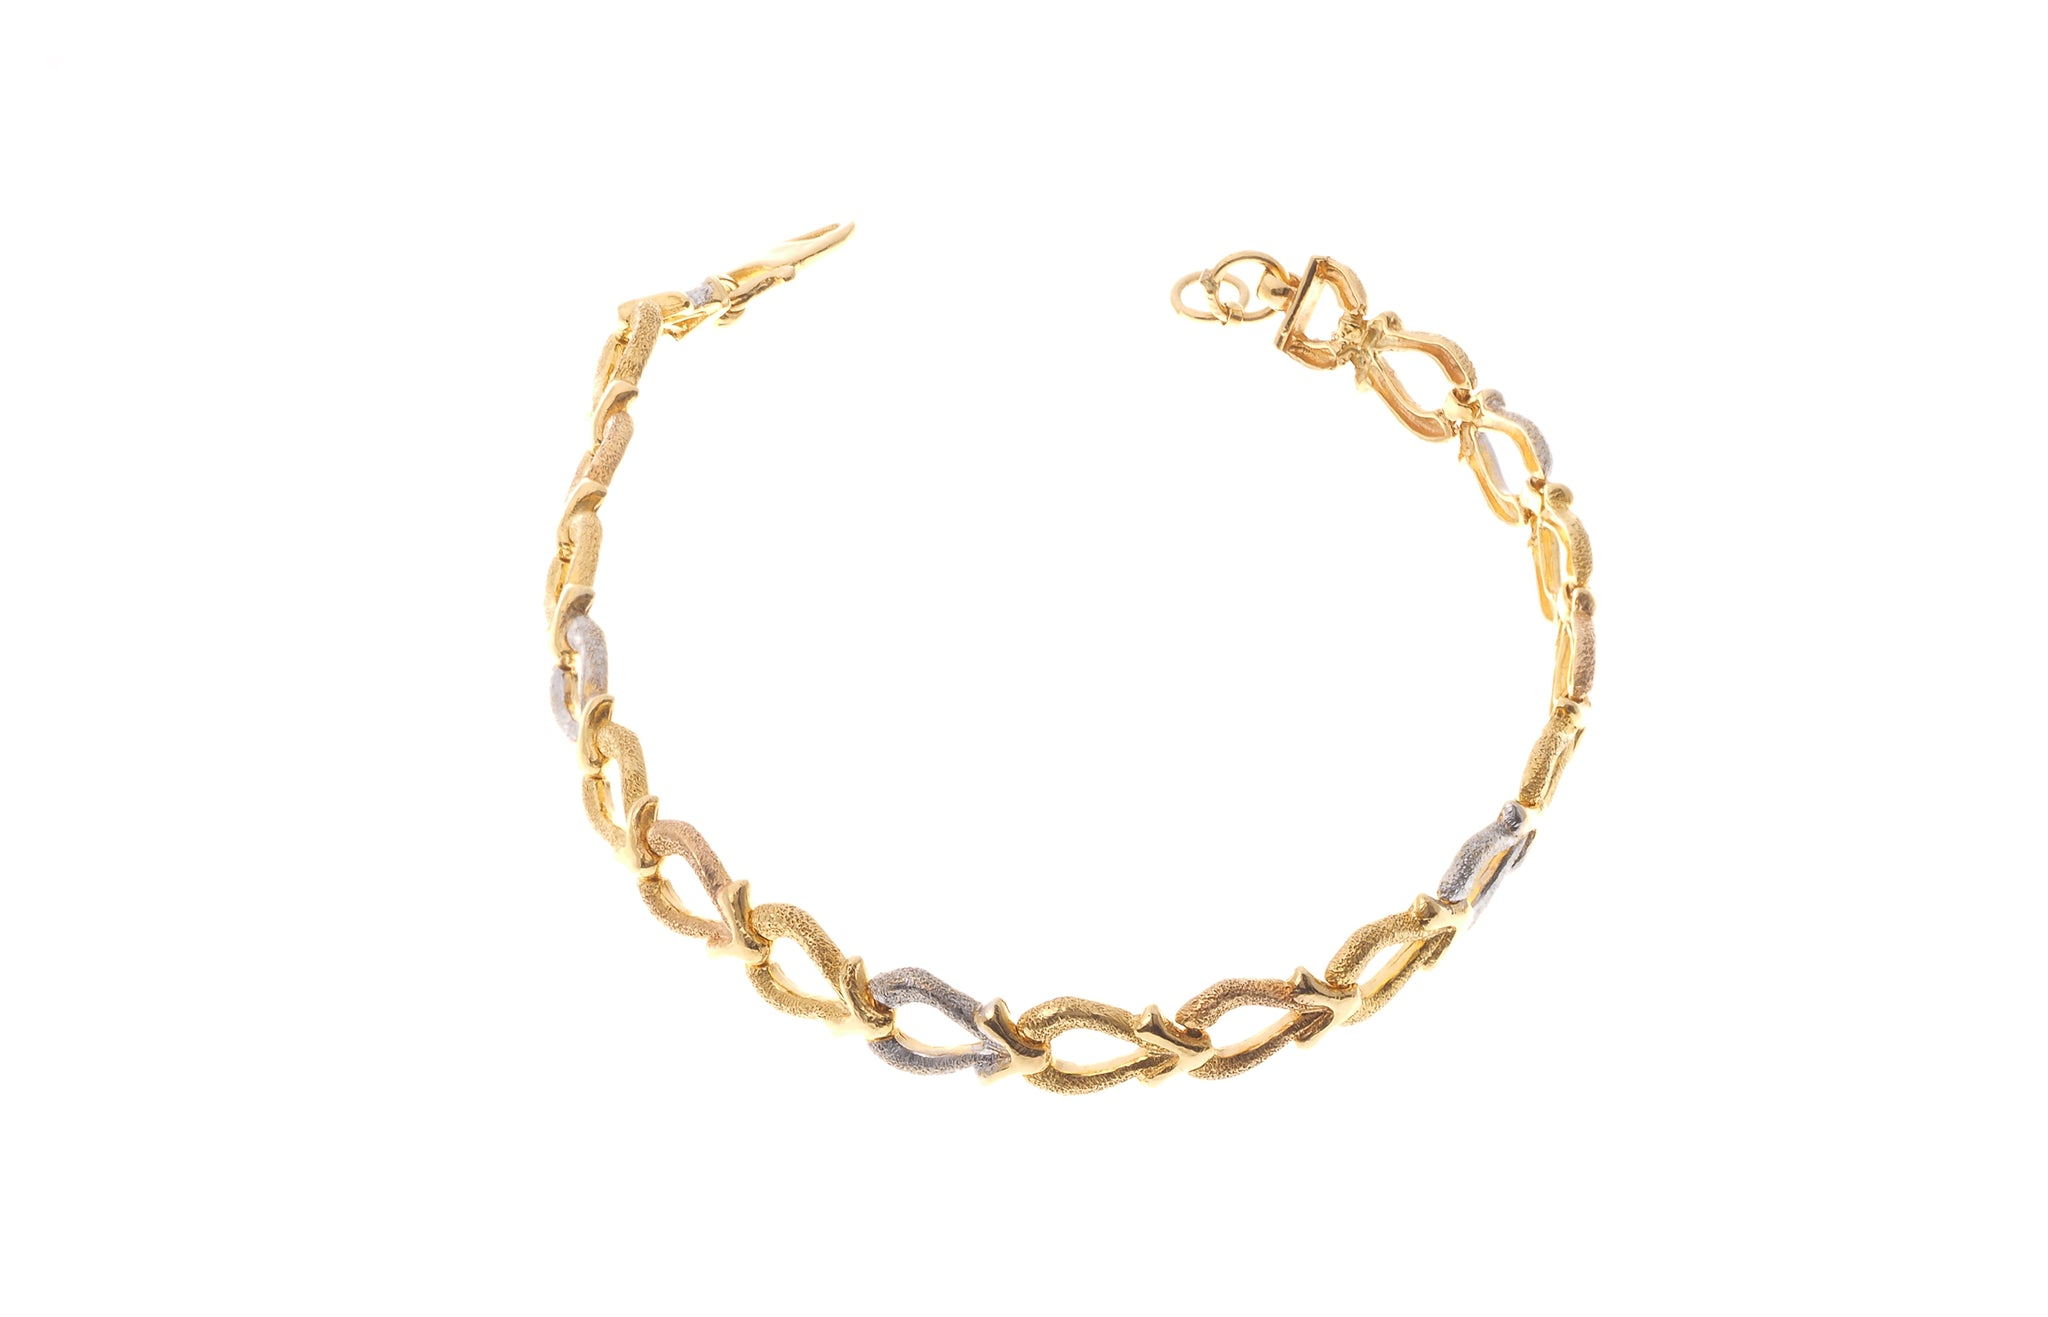 22ct Gold & Rhodium Design Ladies Bracelet with hook clasp (10.2g) LBR-3974